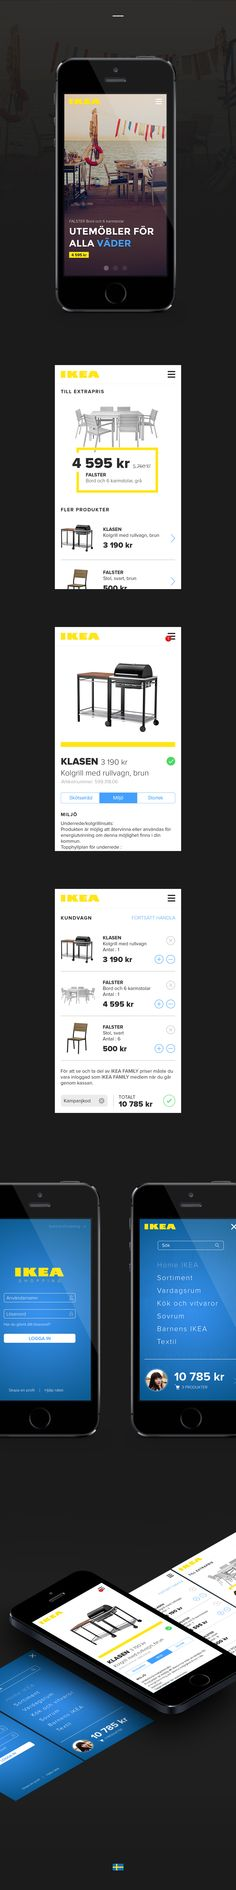 IKEA Mobile App Redesign Concept